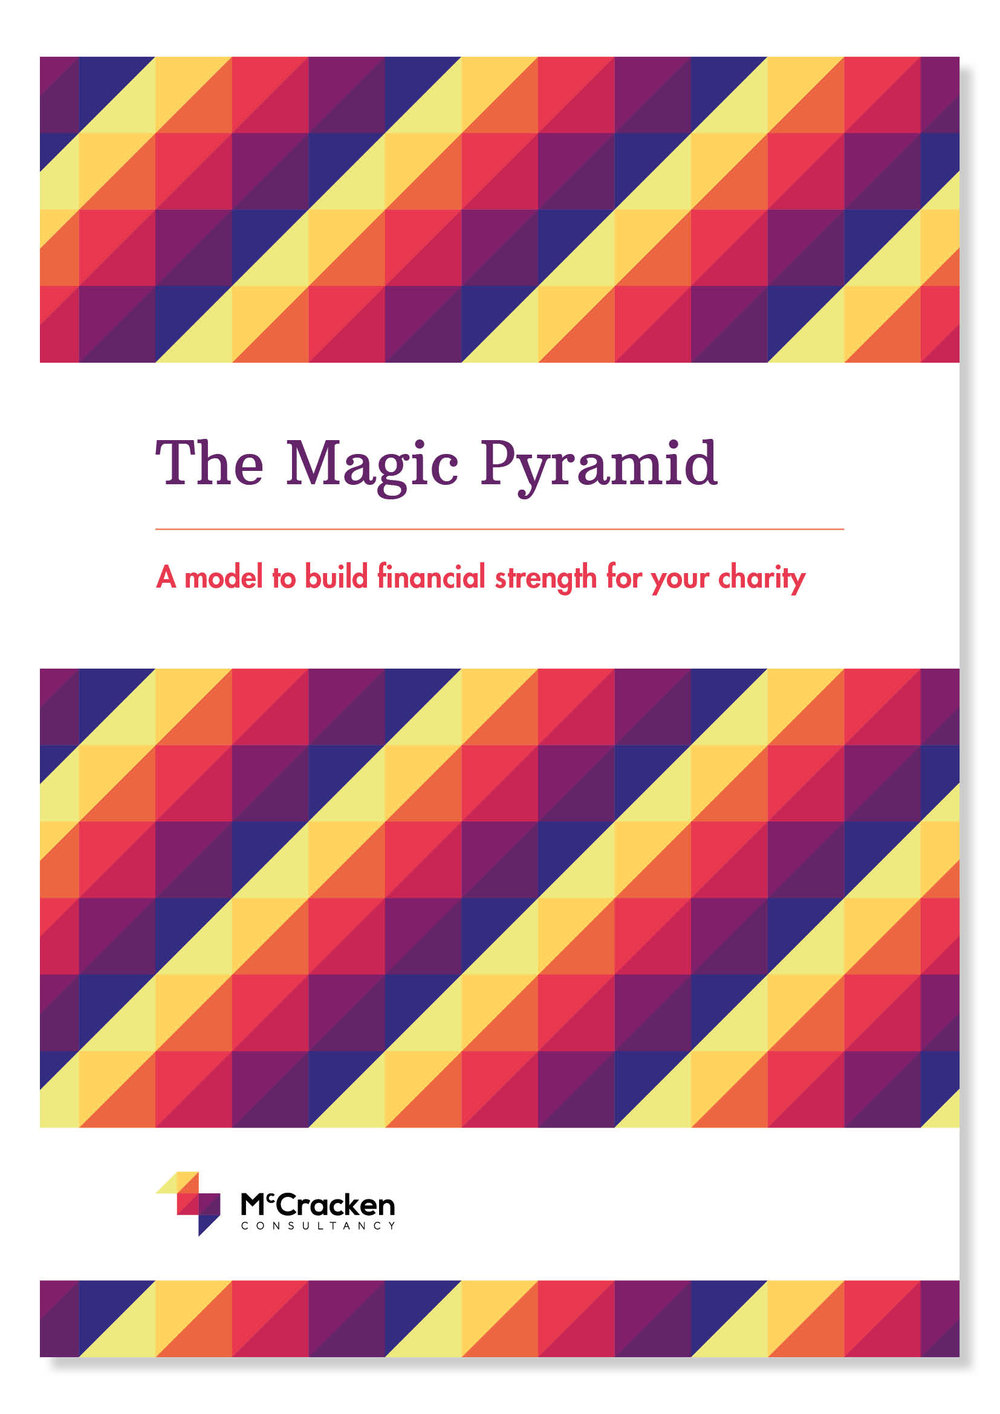 The Magic Pyramid